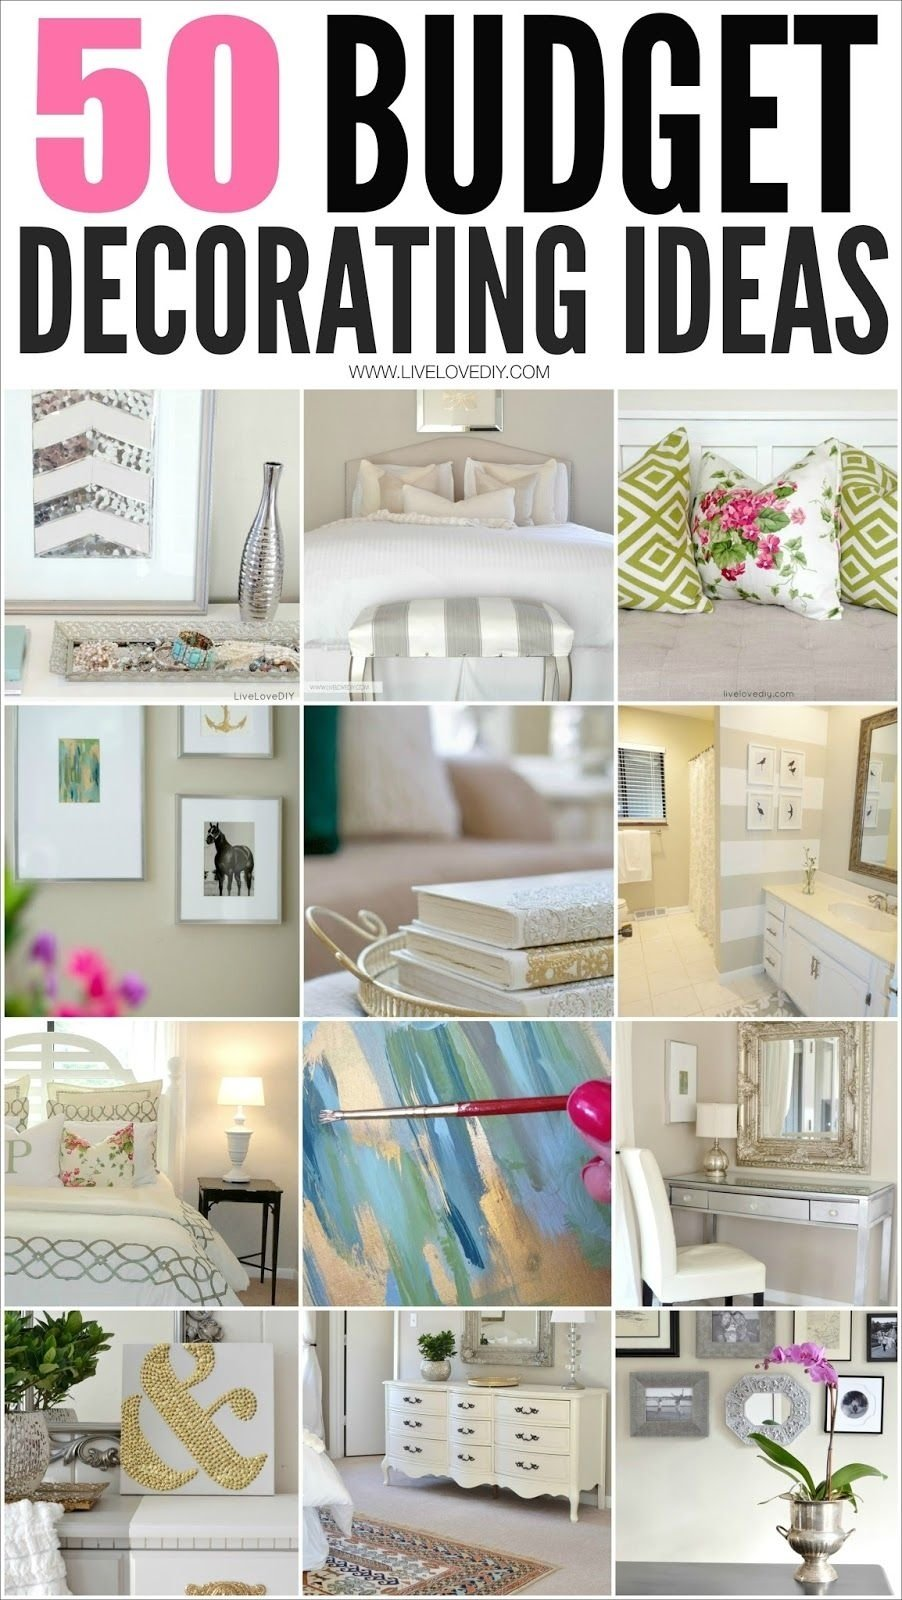 10 Cute Apartment Bedroom Decorating Ideas On A Budget 50 budget decorating tips you should know livelovediy budgeting 5